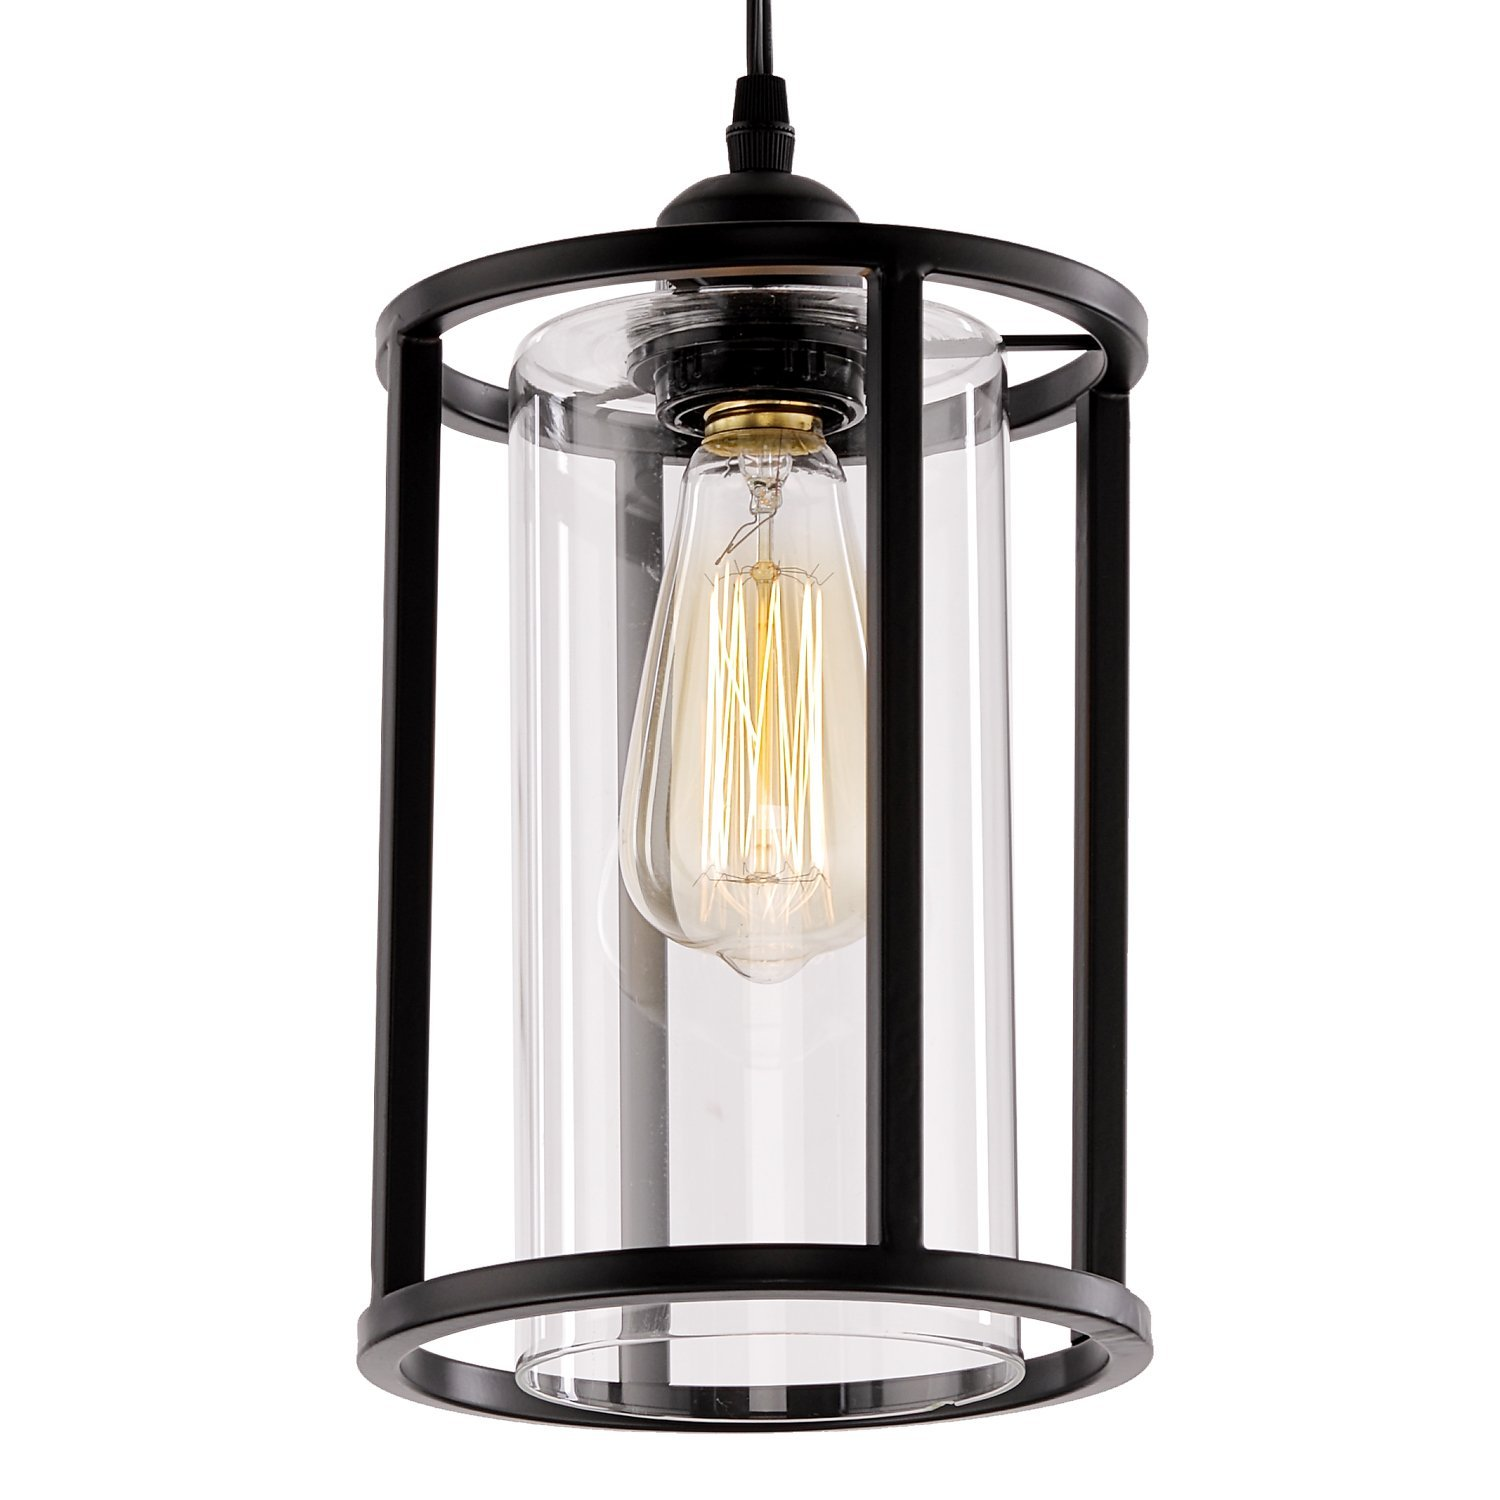 HMVPL Swag Hanging Lights with Plug in Cord and On/Off Dimmer Switch, New Transitional Pendant Lamps with Glass Lampshade for Dining Room, Bed Room